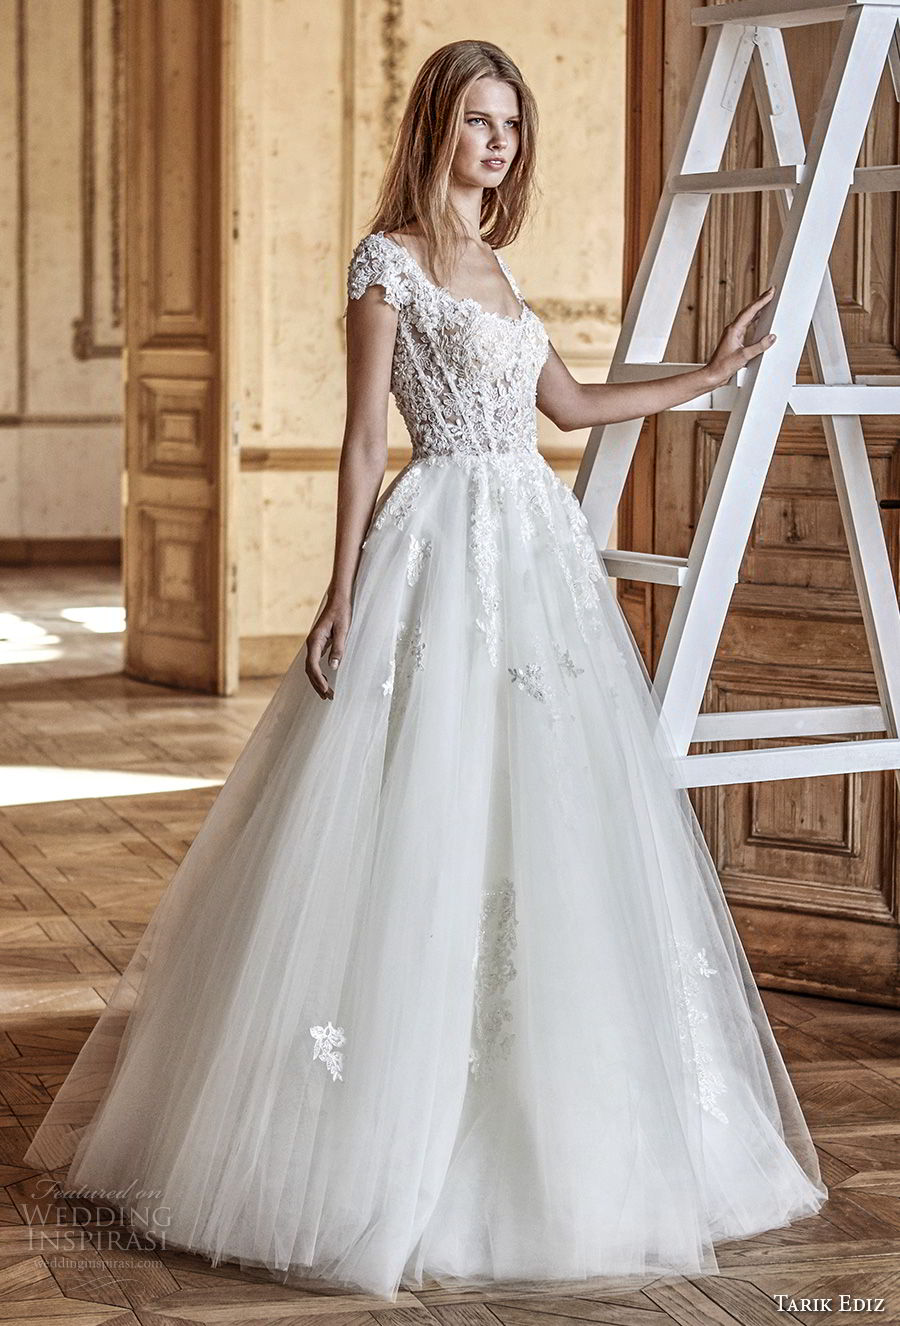 tarik ediz 2017 bridal cap sleeves scoop neckline heavily embellished bodice romantic a line wedding dress (10) mv